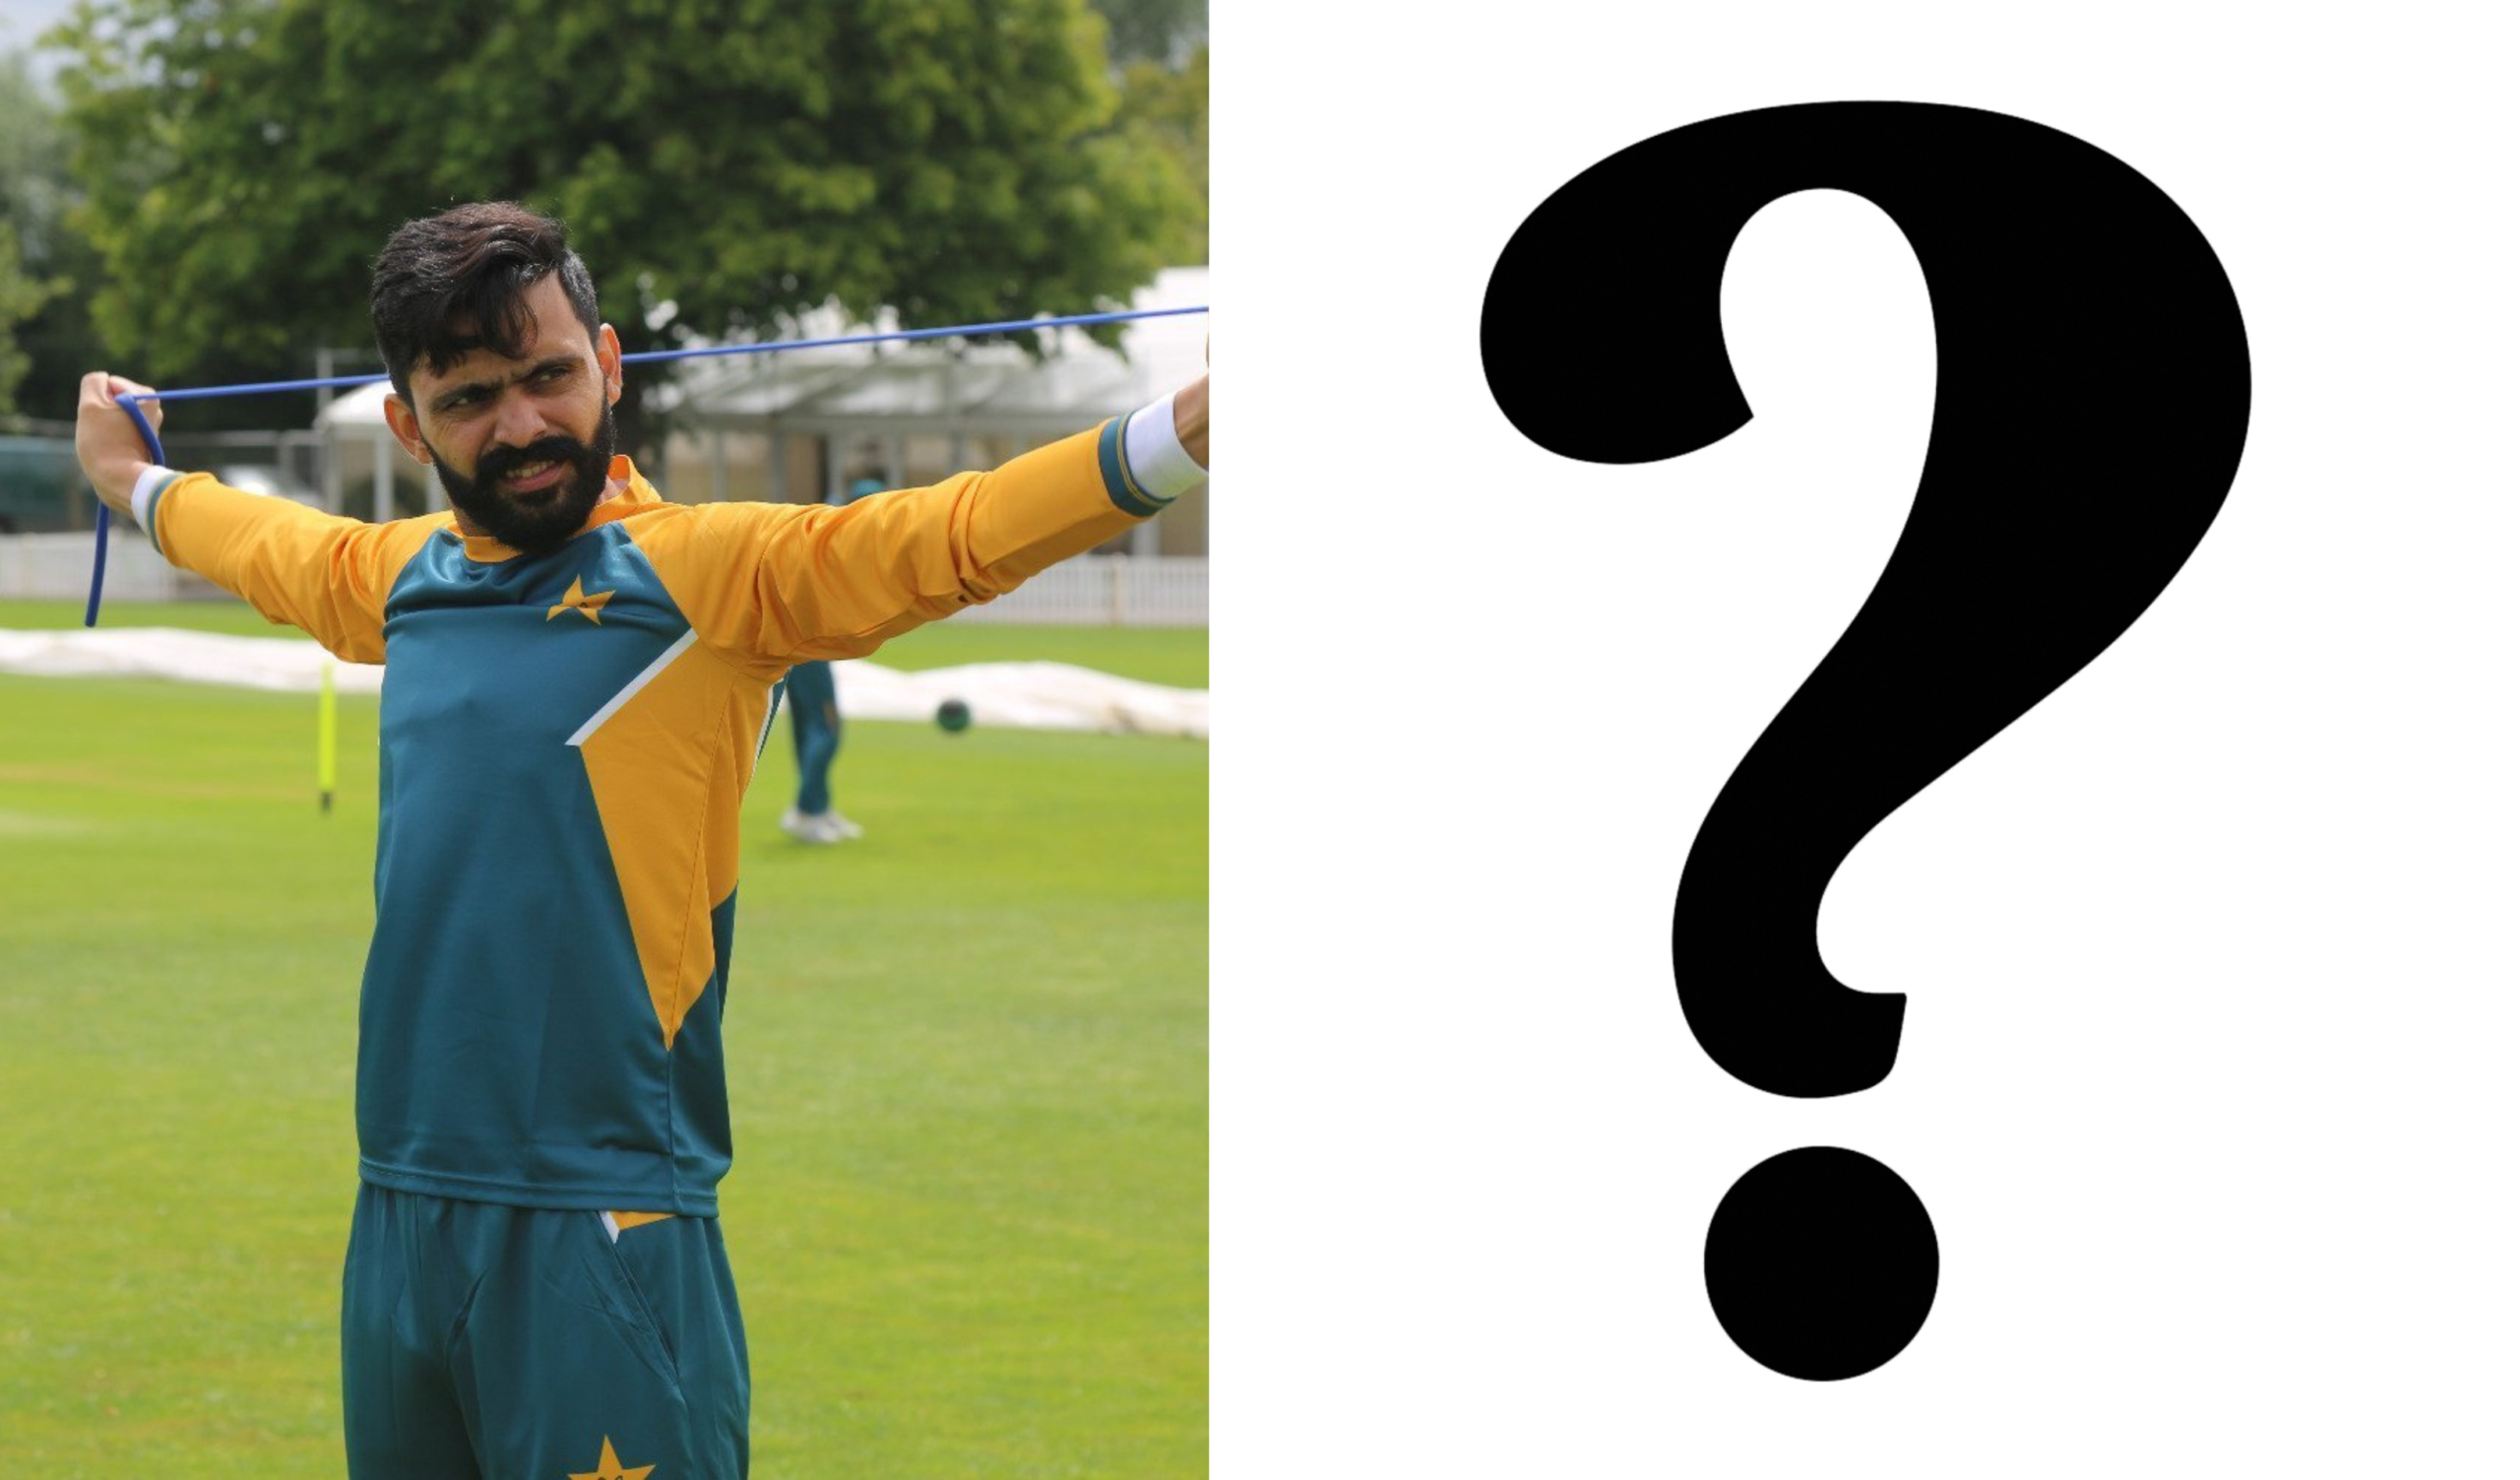 Who is to miss his place in the second test as Fawad Alam is likely to bat at 6? Image: CricTribune